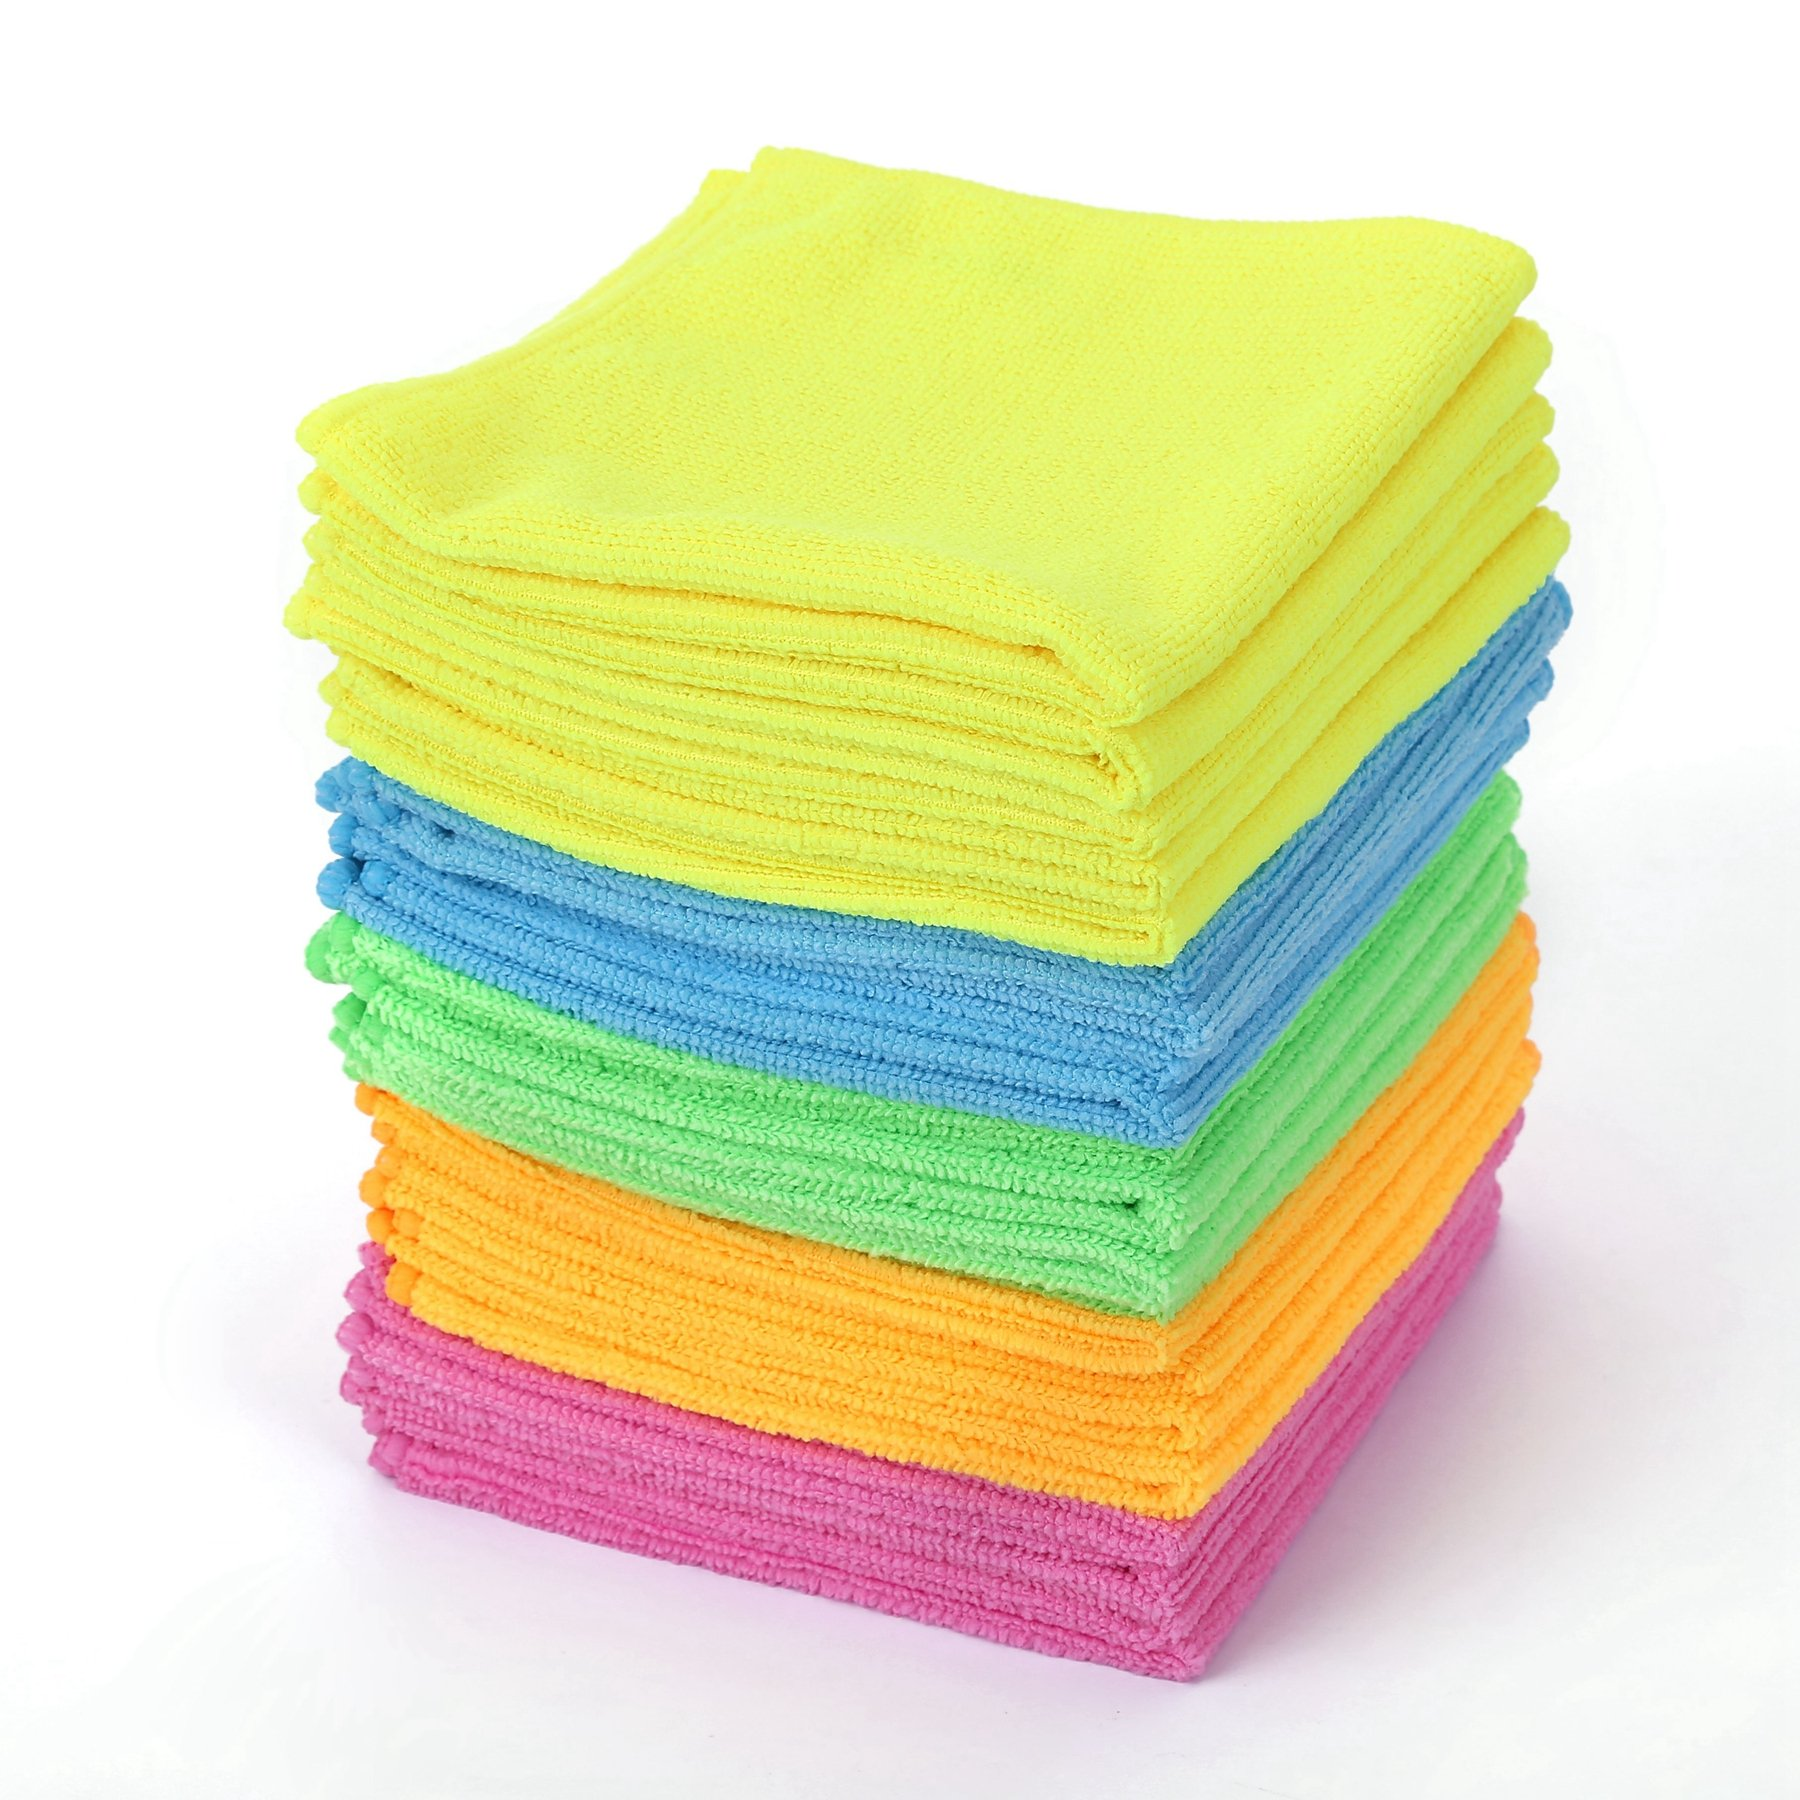 """Microfiber Cleaning Cloth – HijiNa, Pack of 20, Size 12""""x12"""", for Cleaning tasks in The Kitchen, Bathroom, Dining Room and More (Plain - 5 Colors x 4) by HijiNa"""